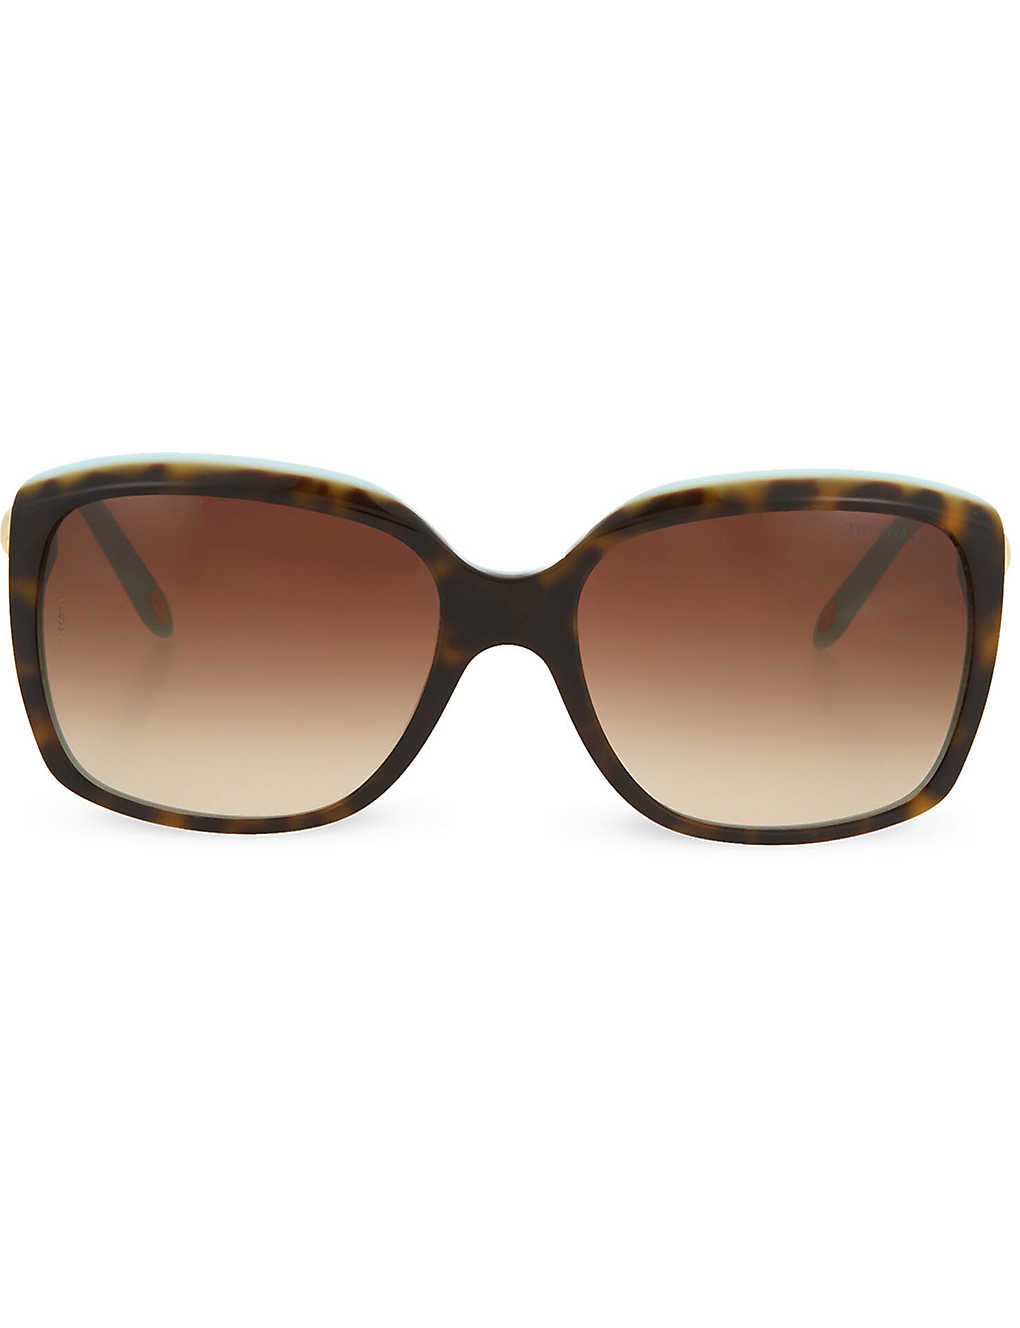 TIFFANY & CO: Tortoise shell square sunglasses